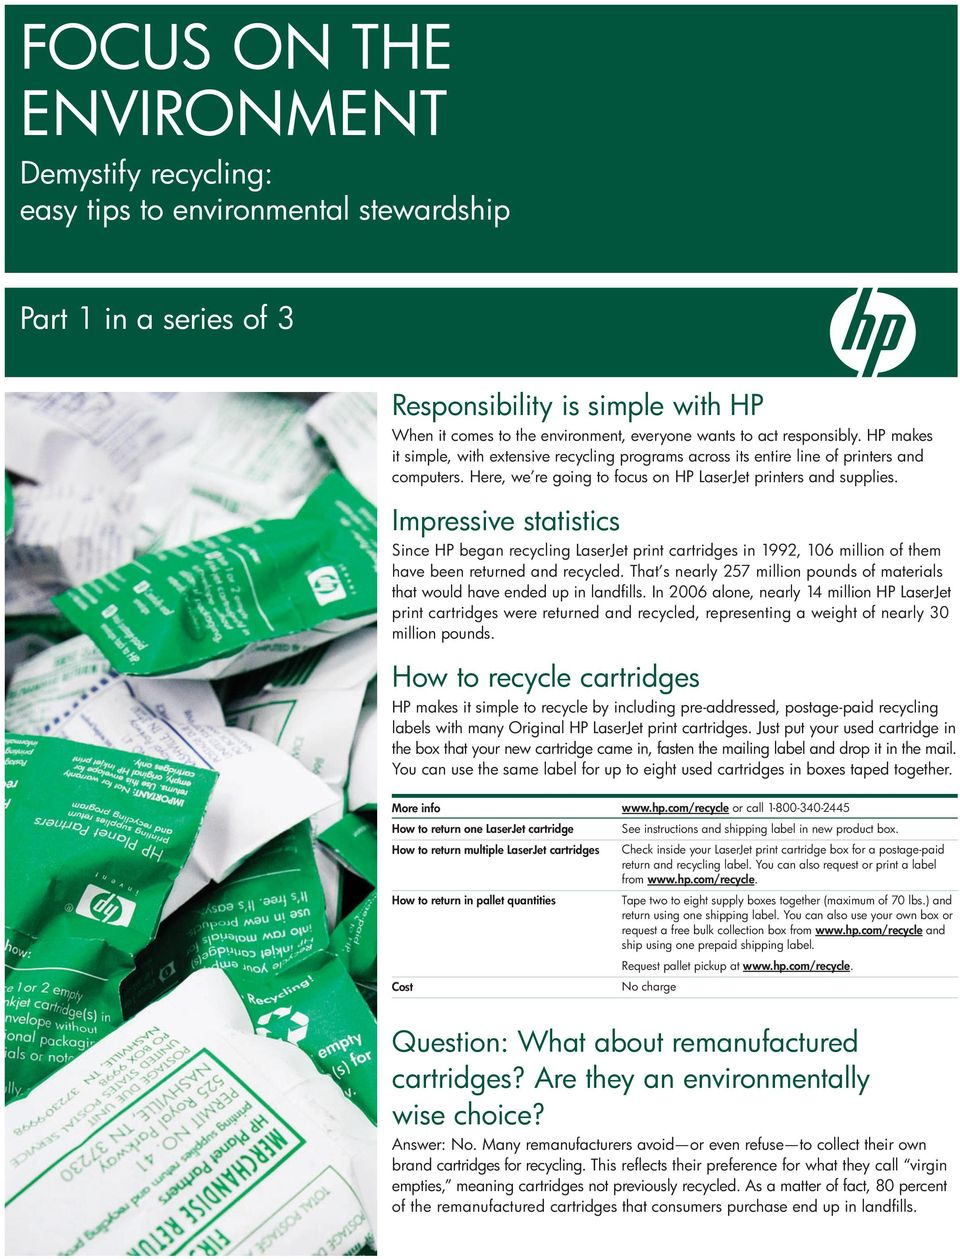 Impressive statistics Since HP began recycling LaserJet print cartridges in 1992, 106 million of them have been returned and recycled.